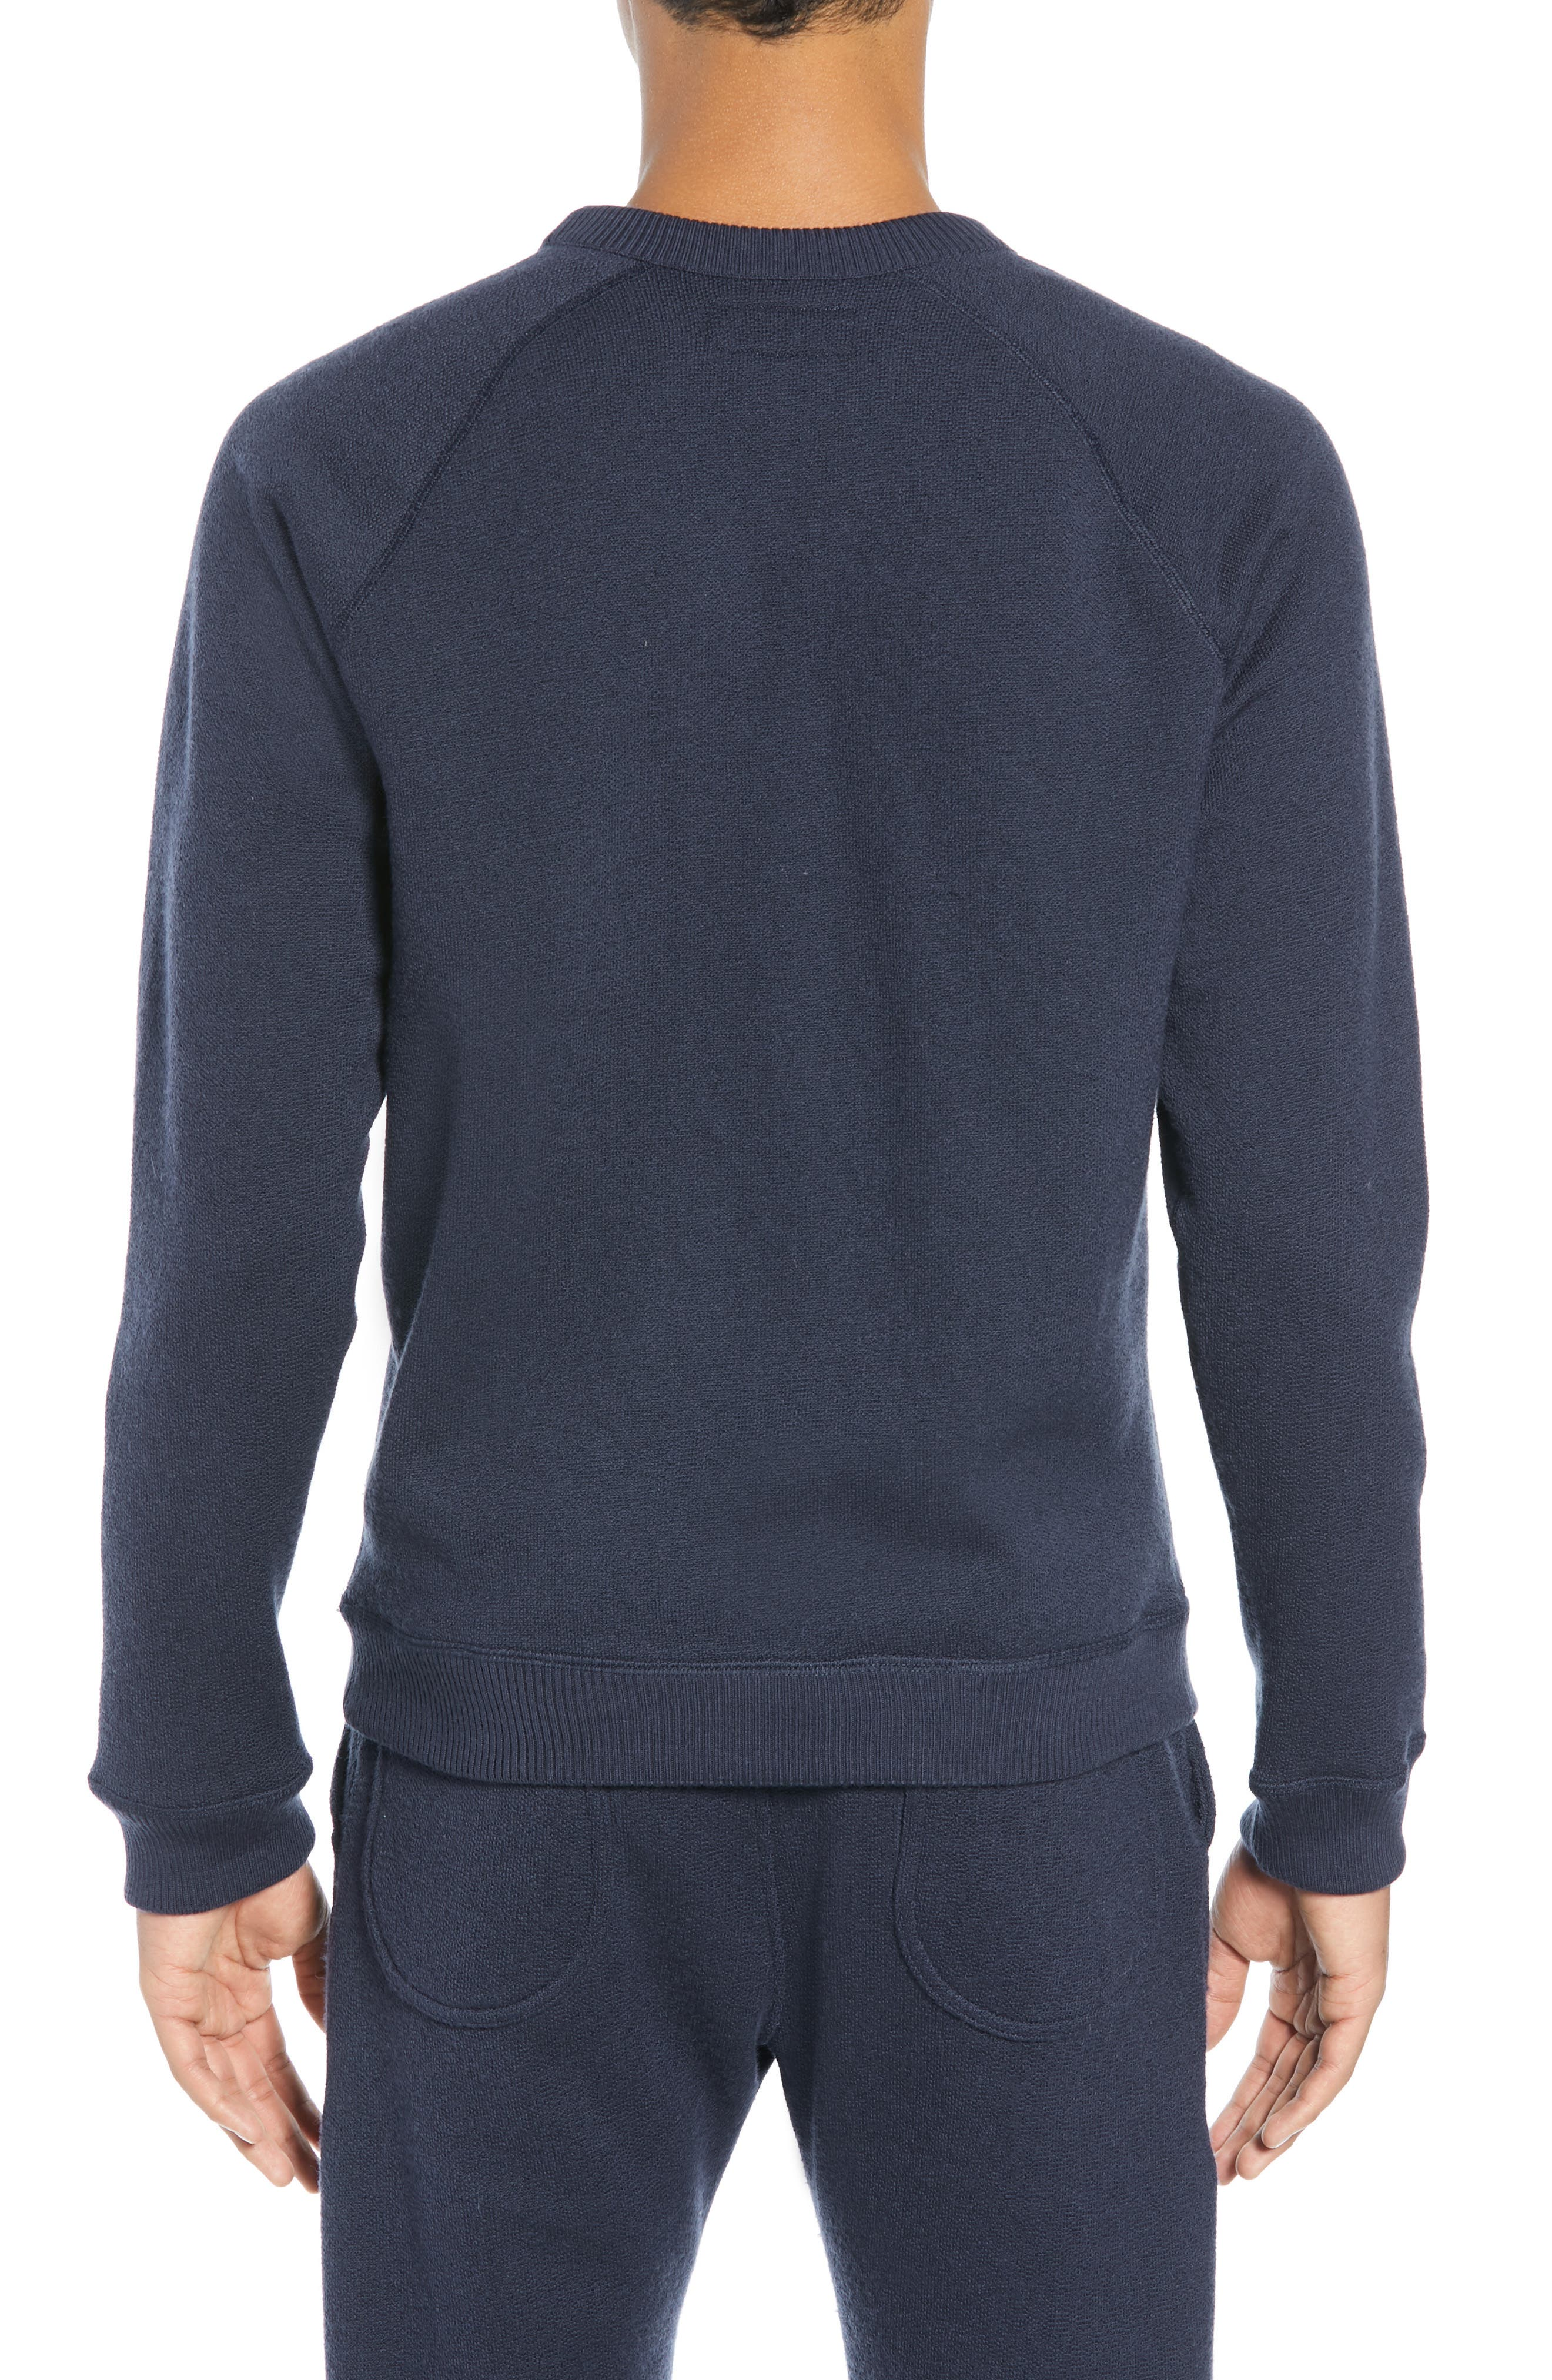 BEST MADE CO., The Merino Wool Fleece Crew Sweatshirt, Alternate thumbnail 3, color, 410